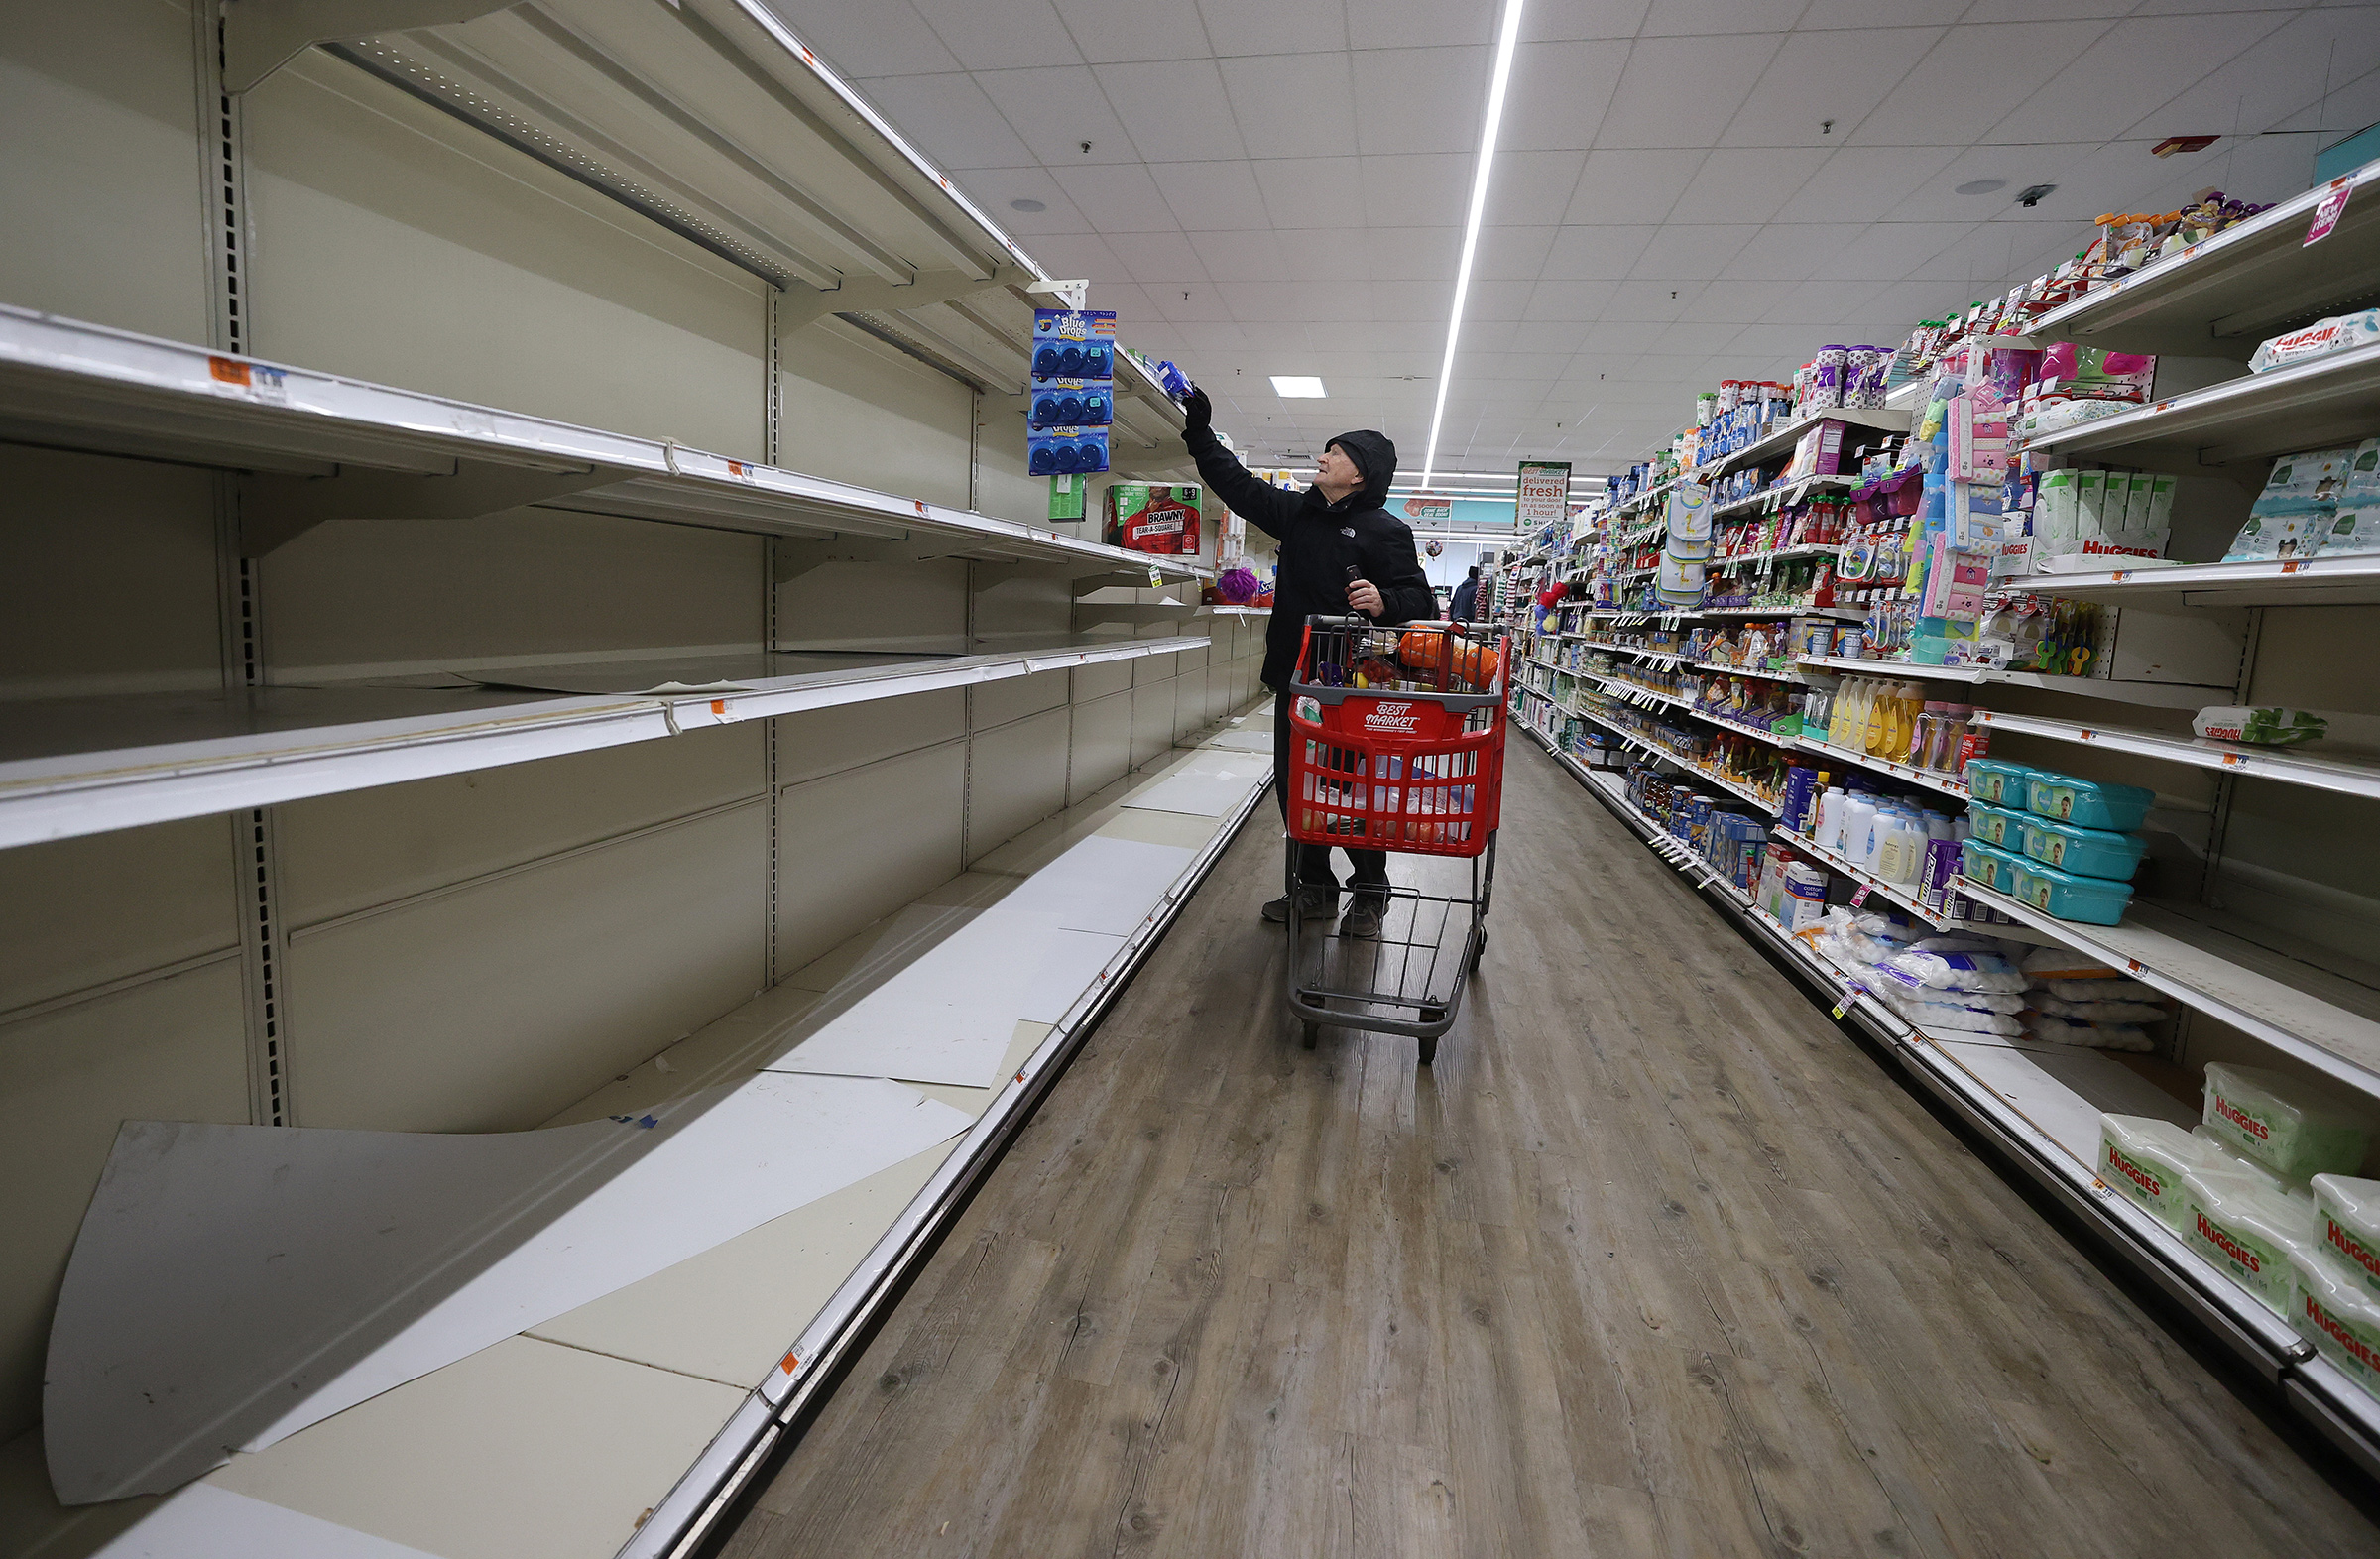 As the coronavirus continues to spread across the U.S., stores like Best Market face high demand for paper goods, leading to empty shelves on March 17 in Merrick, N.Y.